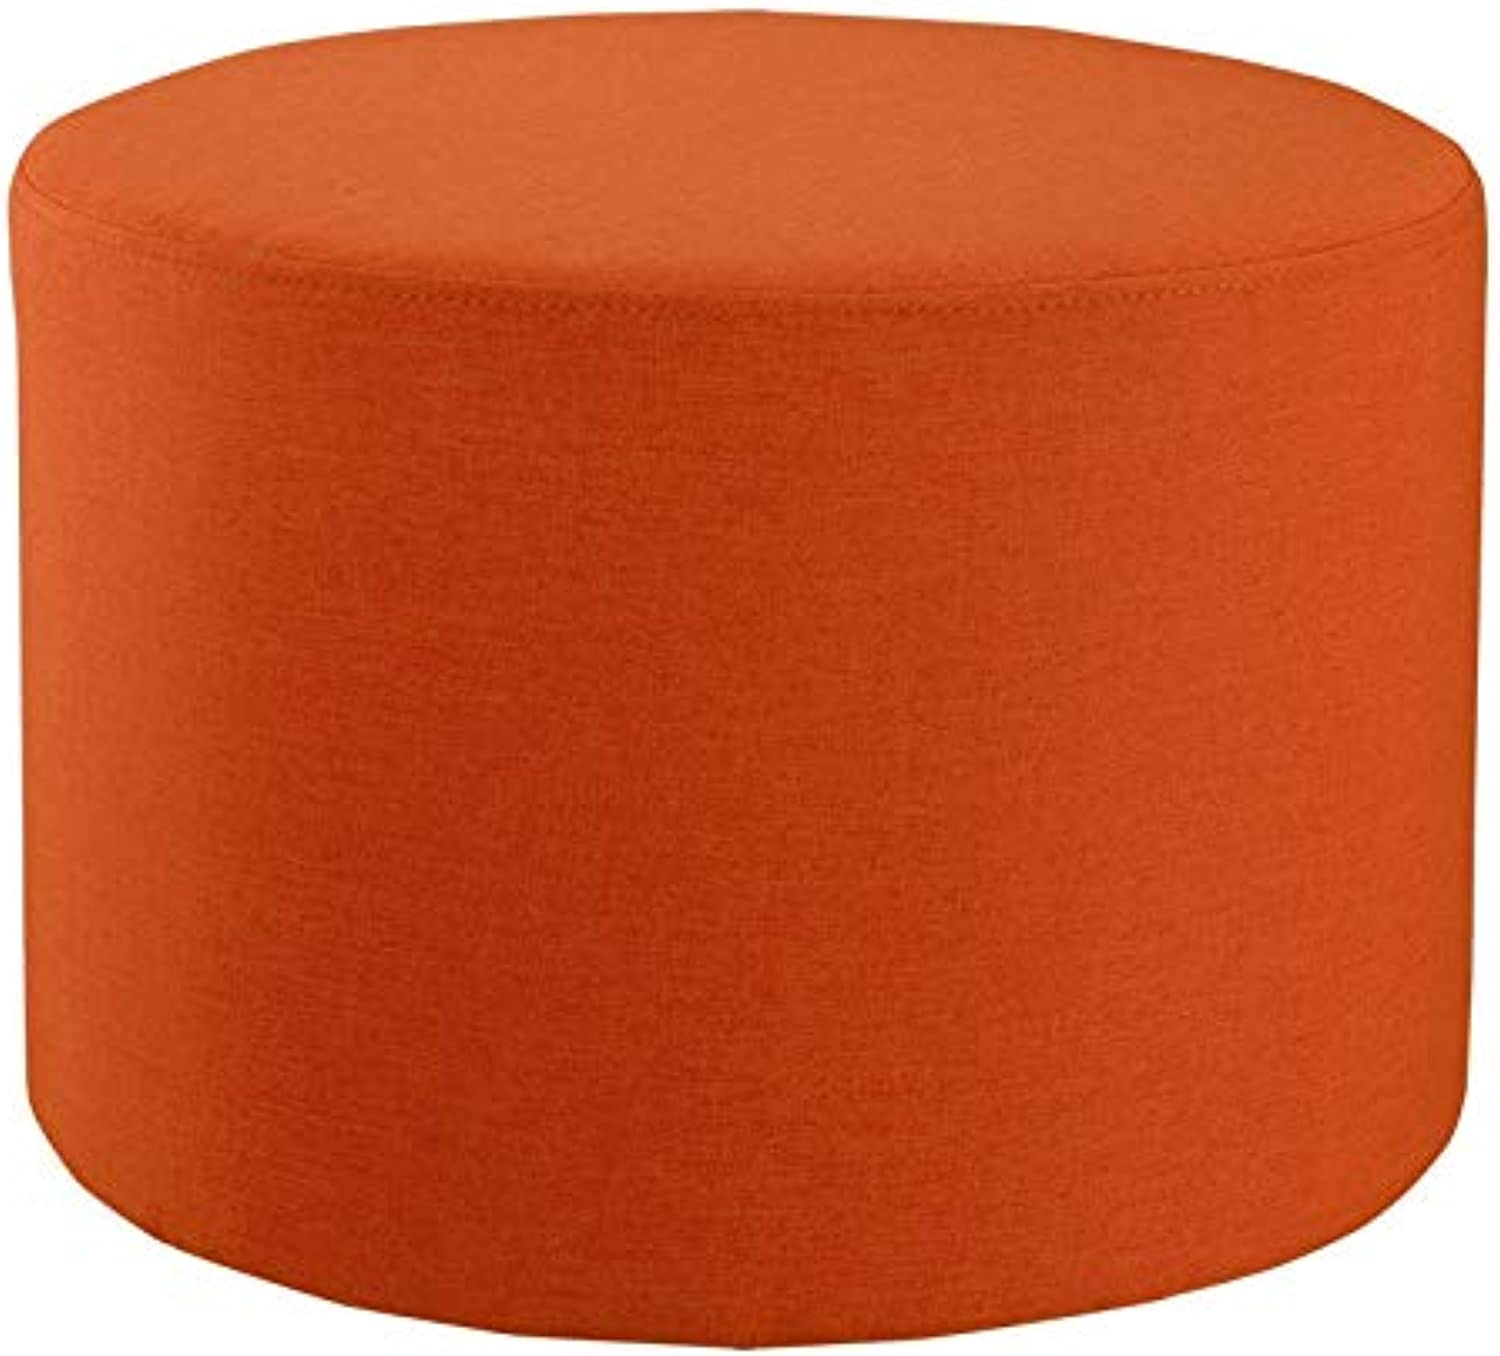 LSXIAO Pouffes And Footstools Solid Wood Stool Retro Cylindrical shoes Bench Stable Non-Slip Load Bearing Cotton and Linen Material, 4 colors (color   orange, Size   50x36cm)